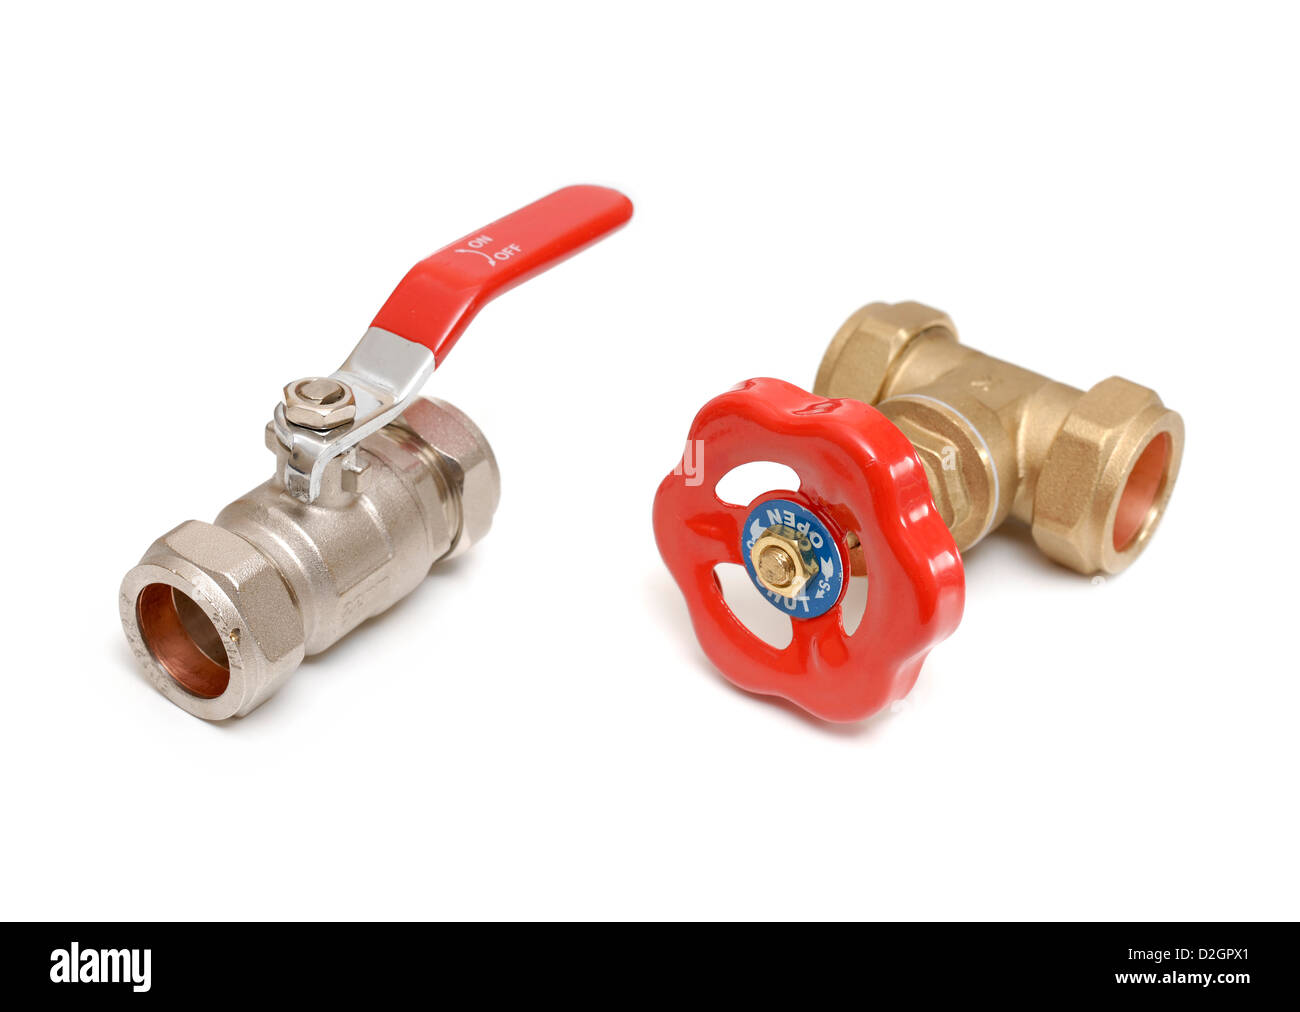 Ball valve and Gate valve plumbing - Stock Image